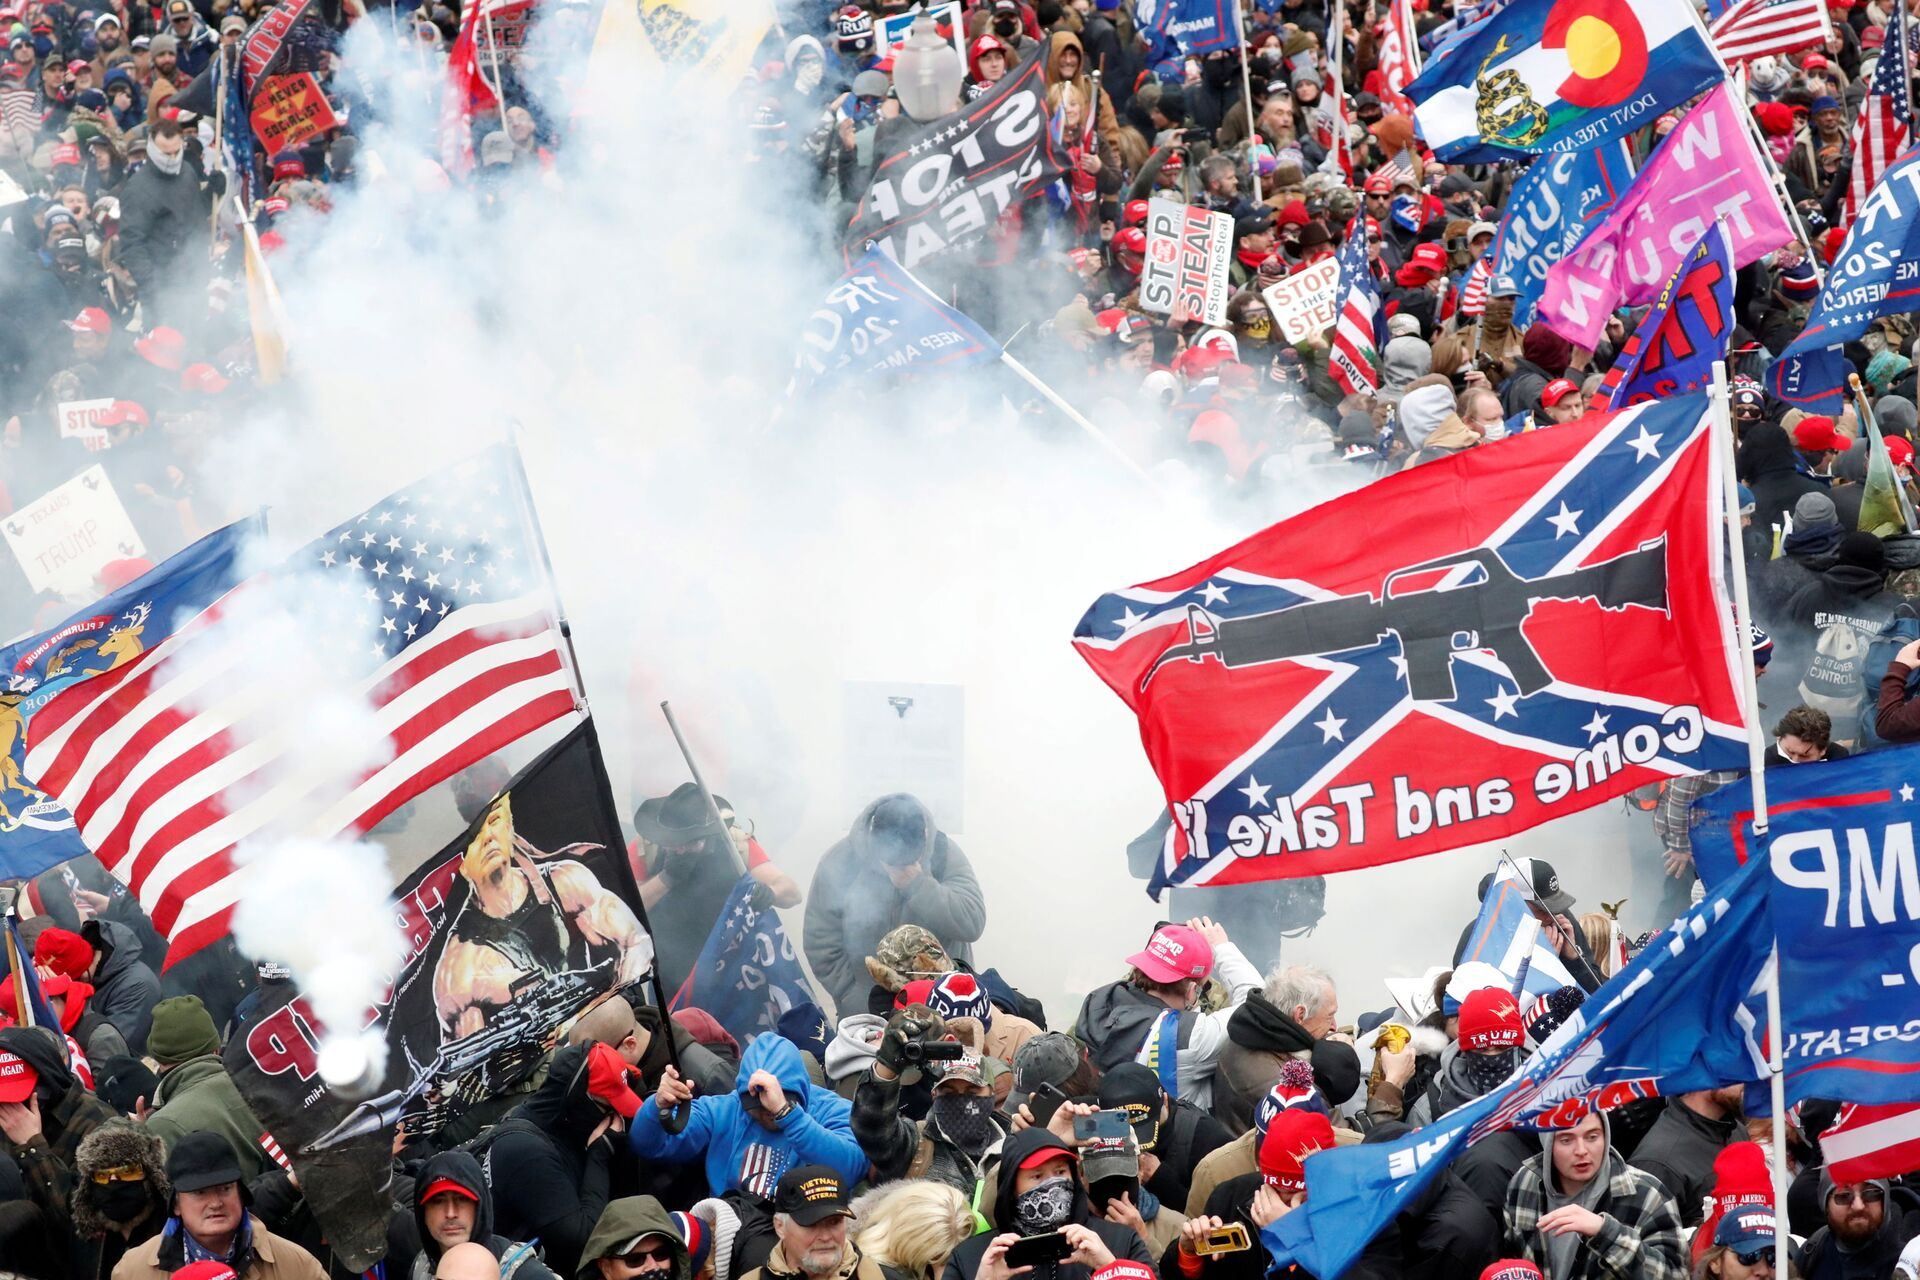 Tear gas is released into a crowd of protesters, with one wielding a Confederate battle flag that reads Come and Take It, during clashes with Capitol police - Sputnik International, 1920, 07.09.2021